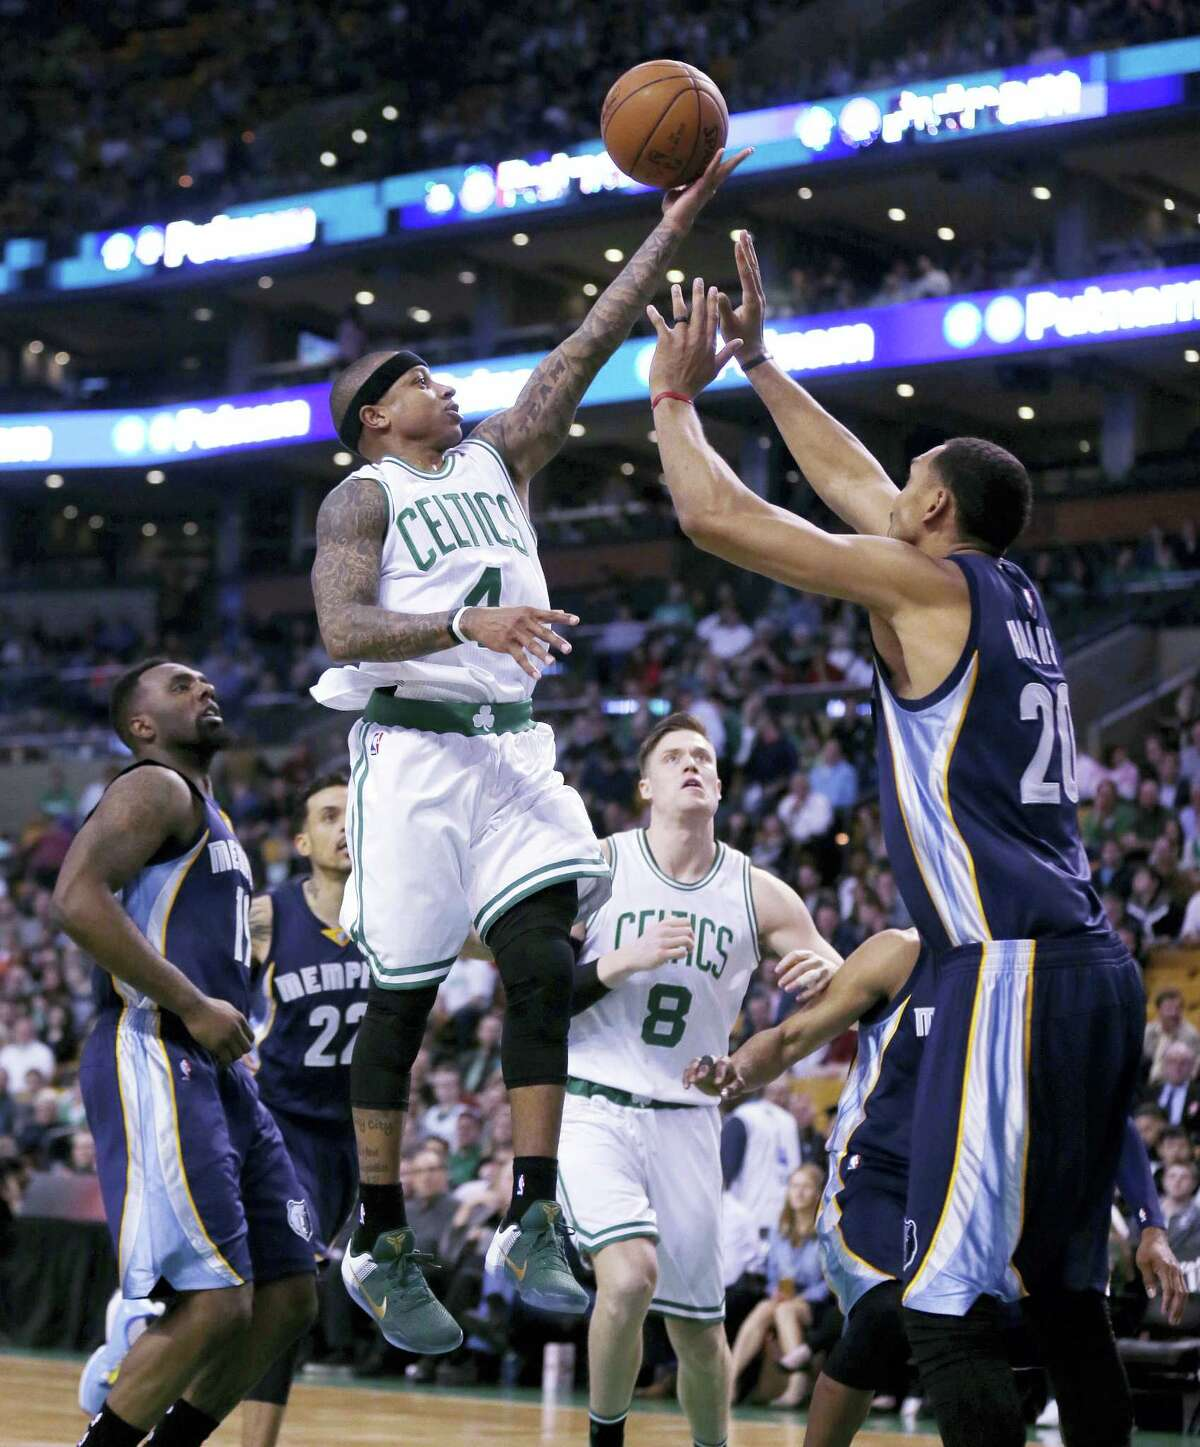 Boston Celtics guard Isaiah Thomas (4) drives to the basket against the Memphis Grizzlies during the first quarter Wednesday in Boston. Thomas scored 22 points in the Celtics 116-96 win.